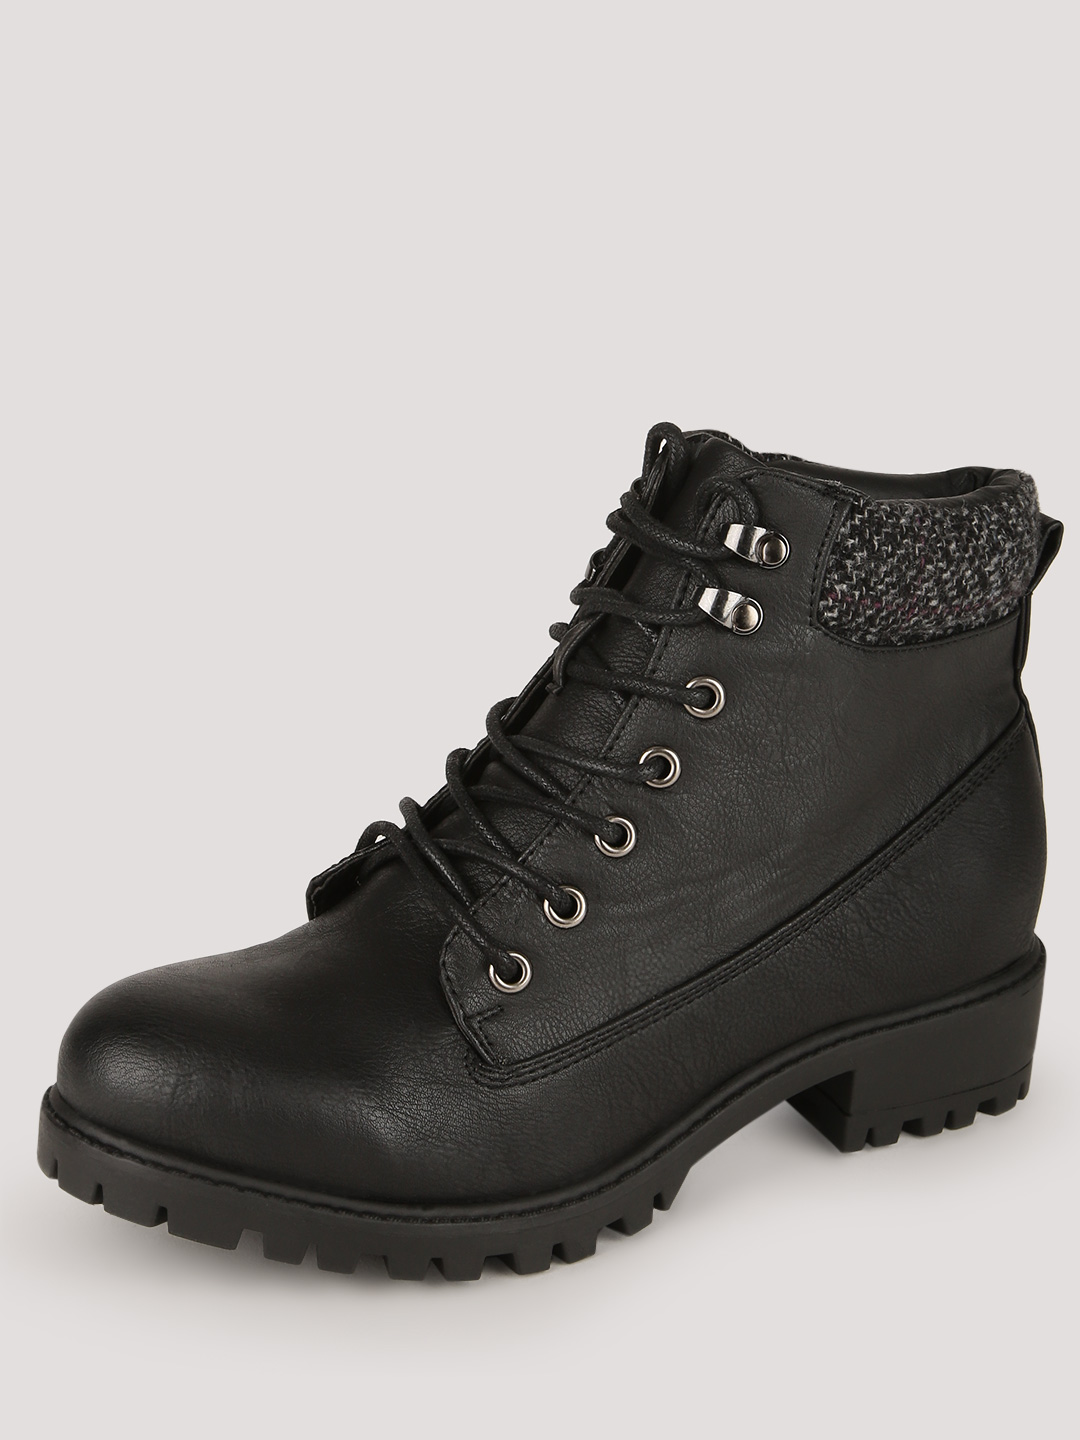 New Look Black Cuff Lace Up Boots 1